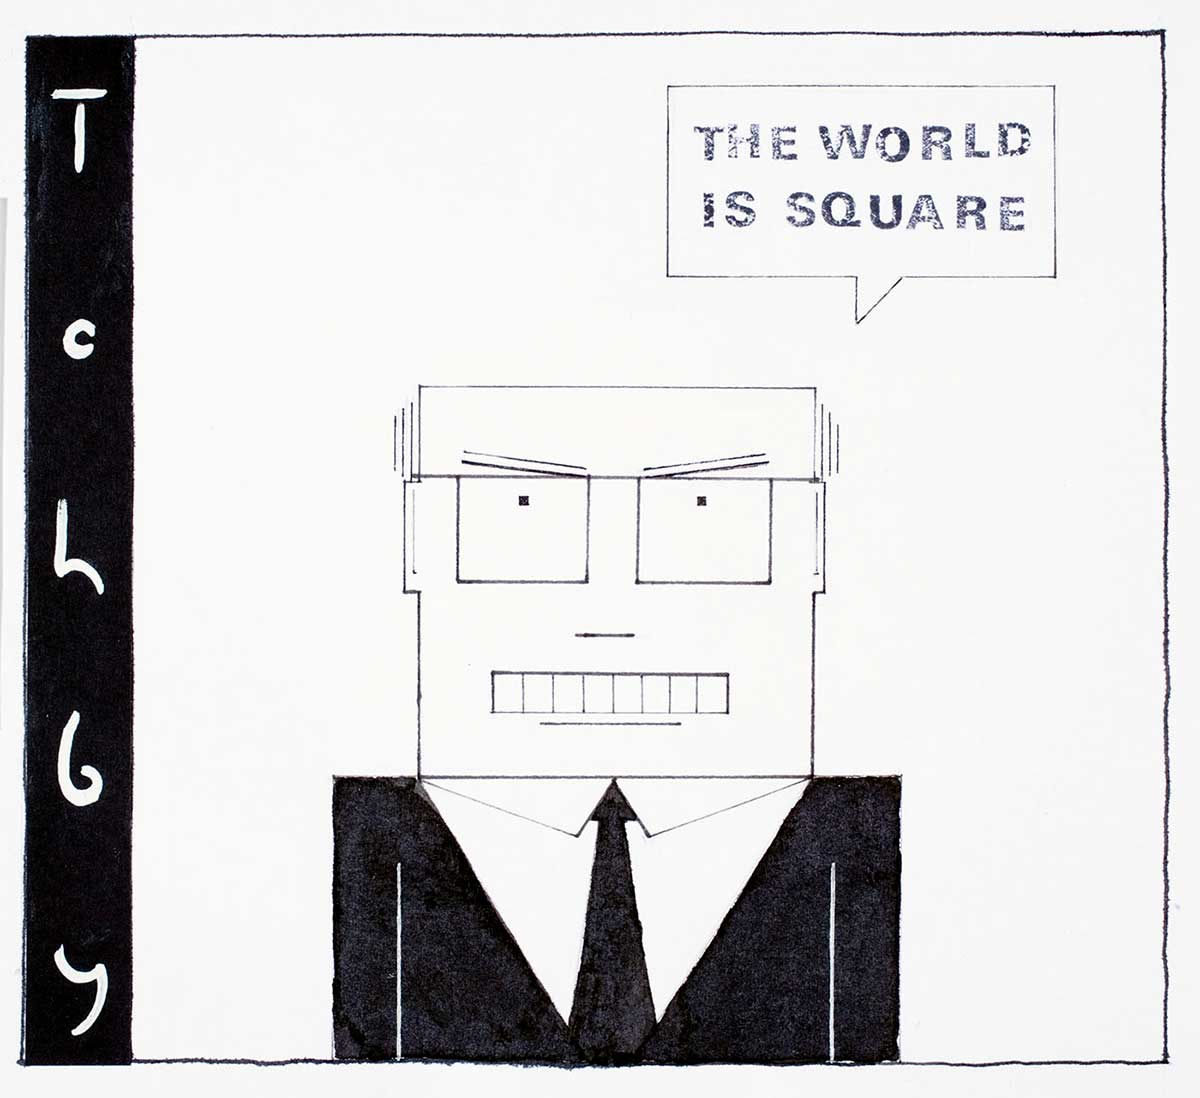 Cartoon image of John Howard with a square head, glasses, mouth, teeth and body stating that 'The world is square' - click to view larger image